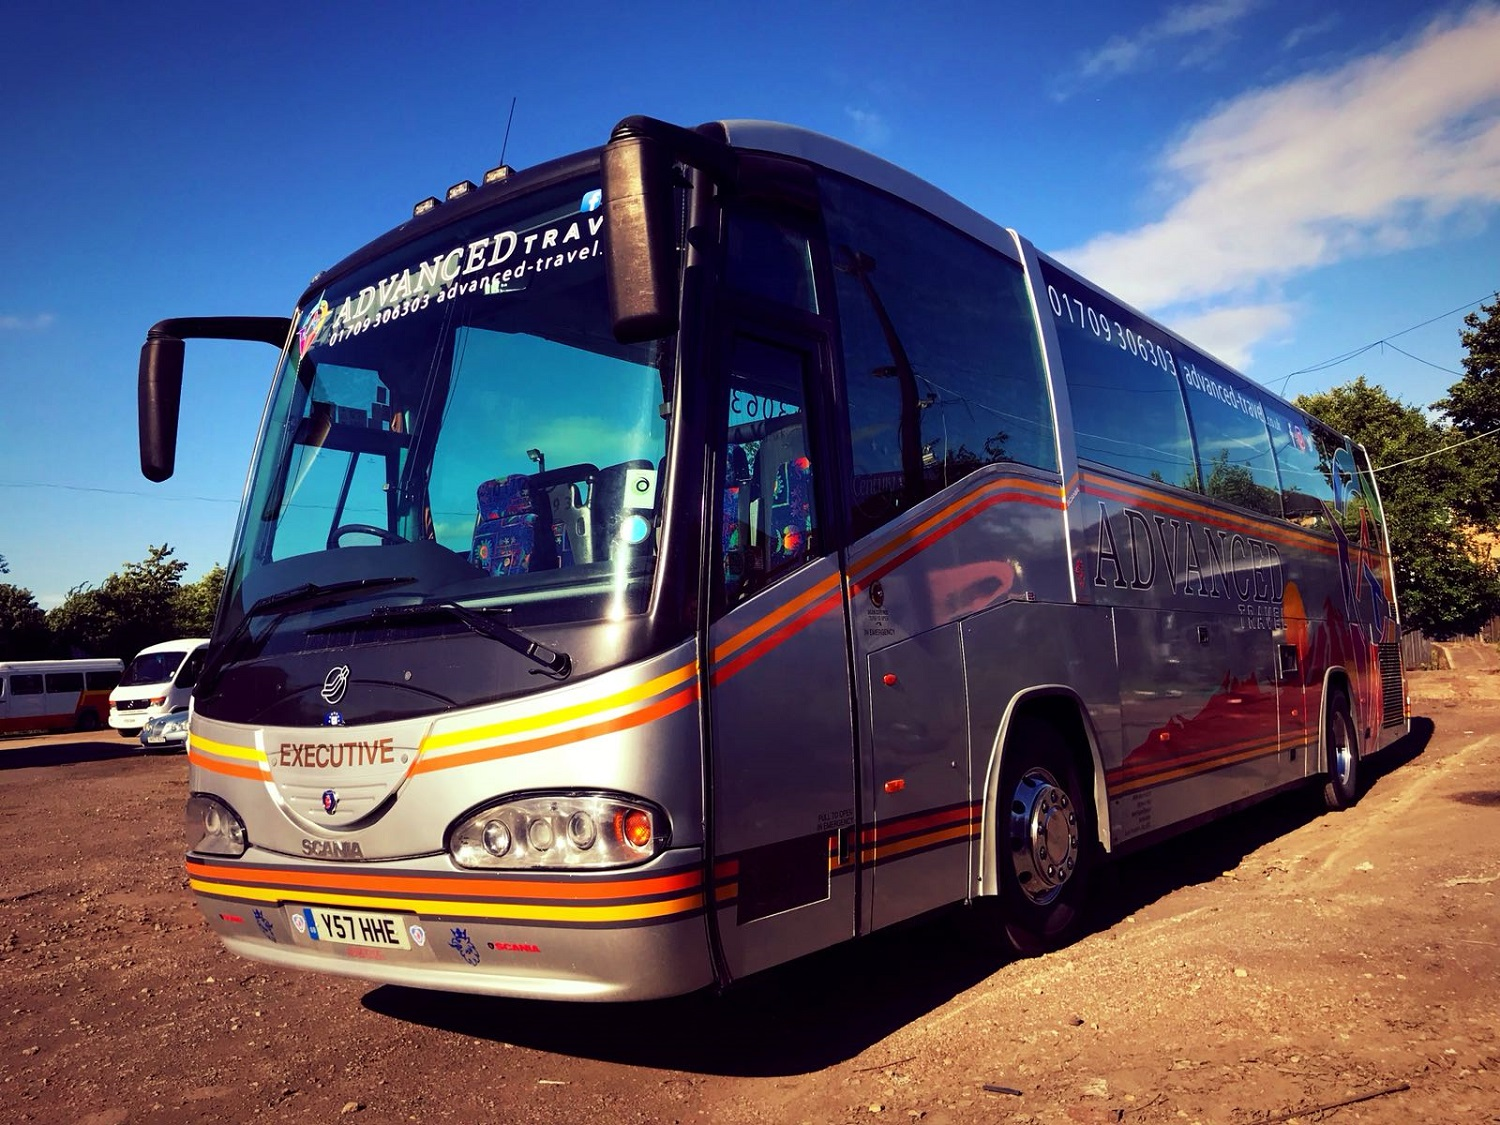 A view of the outside of Advanced Travel's 49 seater Scania Irizar coach, which is available for coach hire in Doncaster. The front and left hand side of the coach are visible. The coach is silver with an orange and yellow border. Advanced Travel's name, logo, website and phone number are displayed at the top of the windscreen and also on the side of the coach.